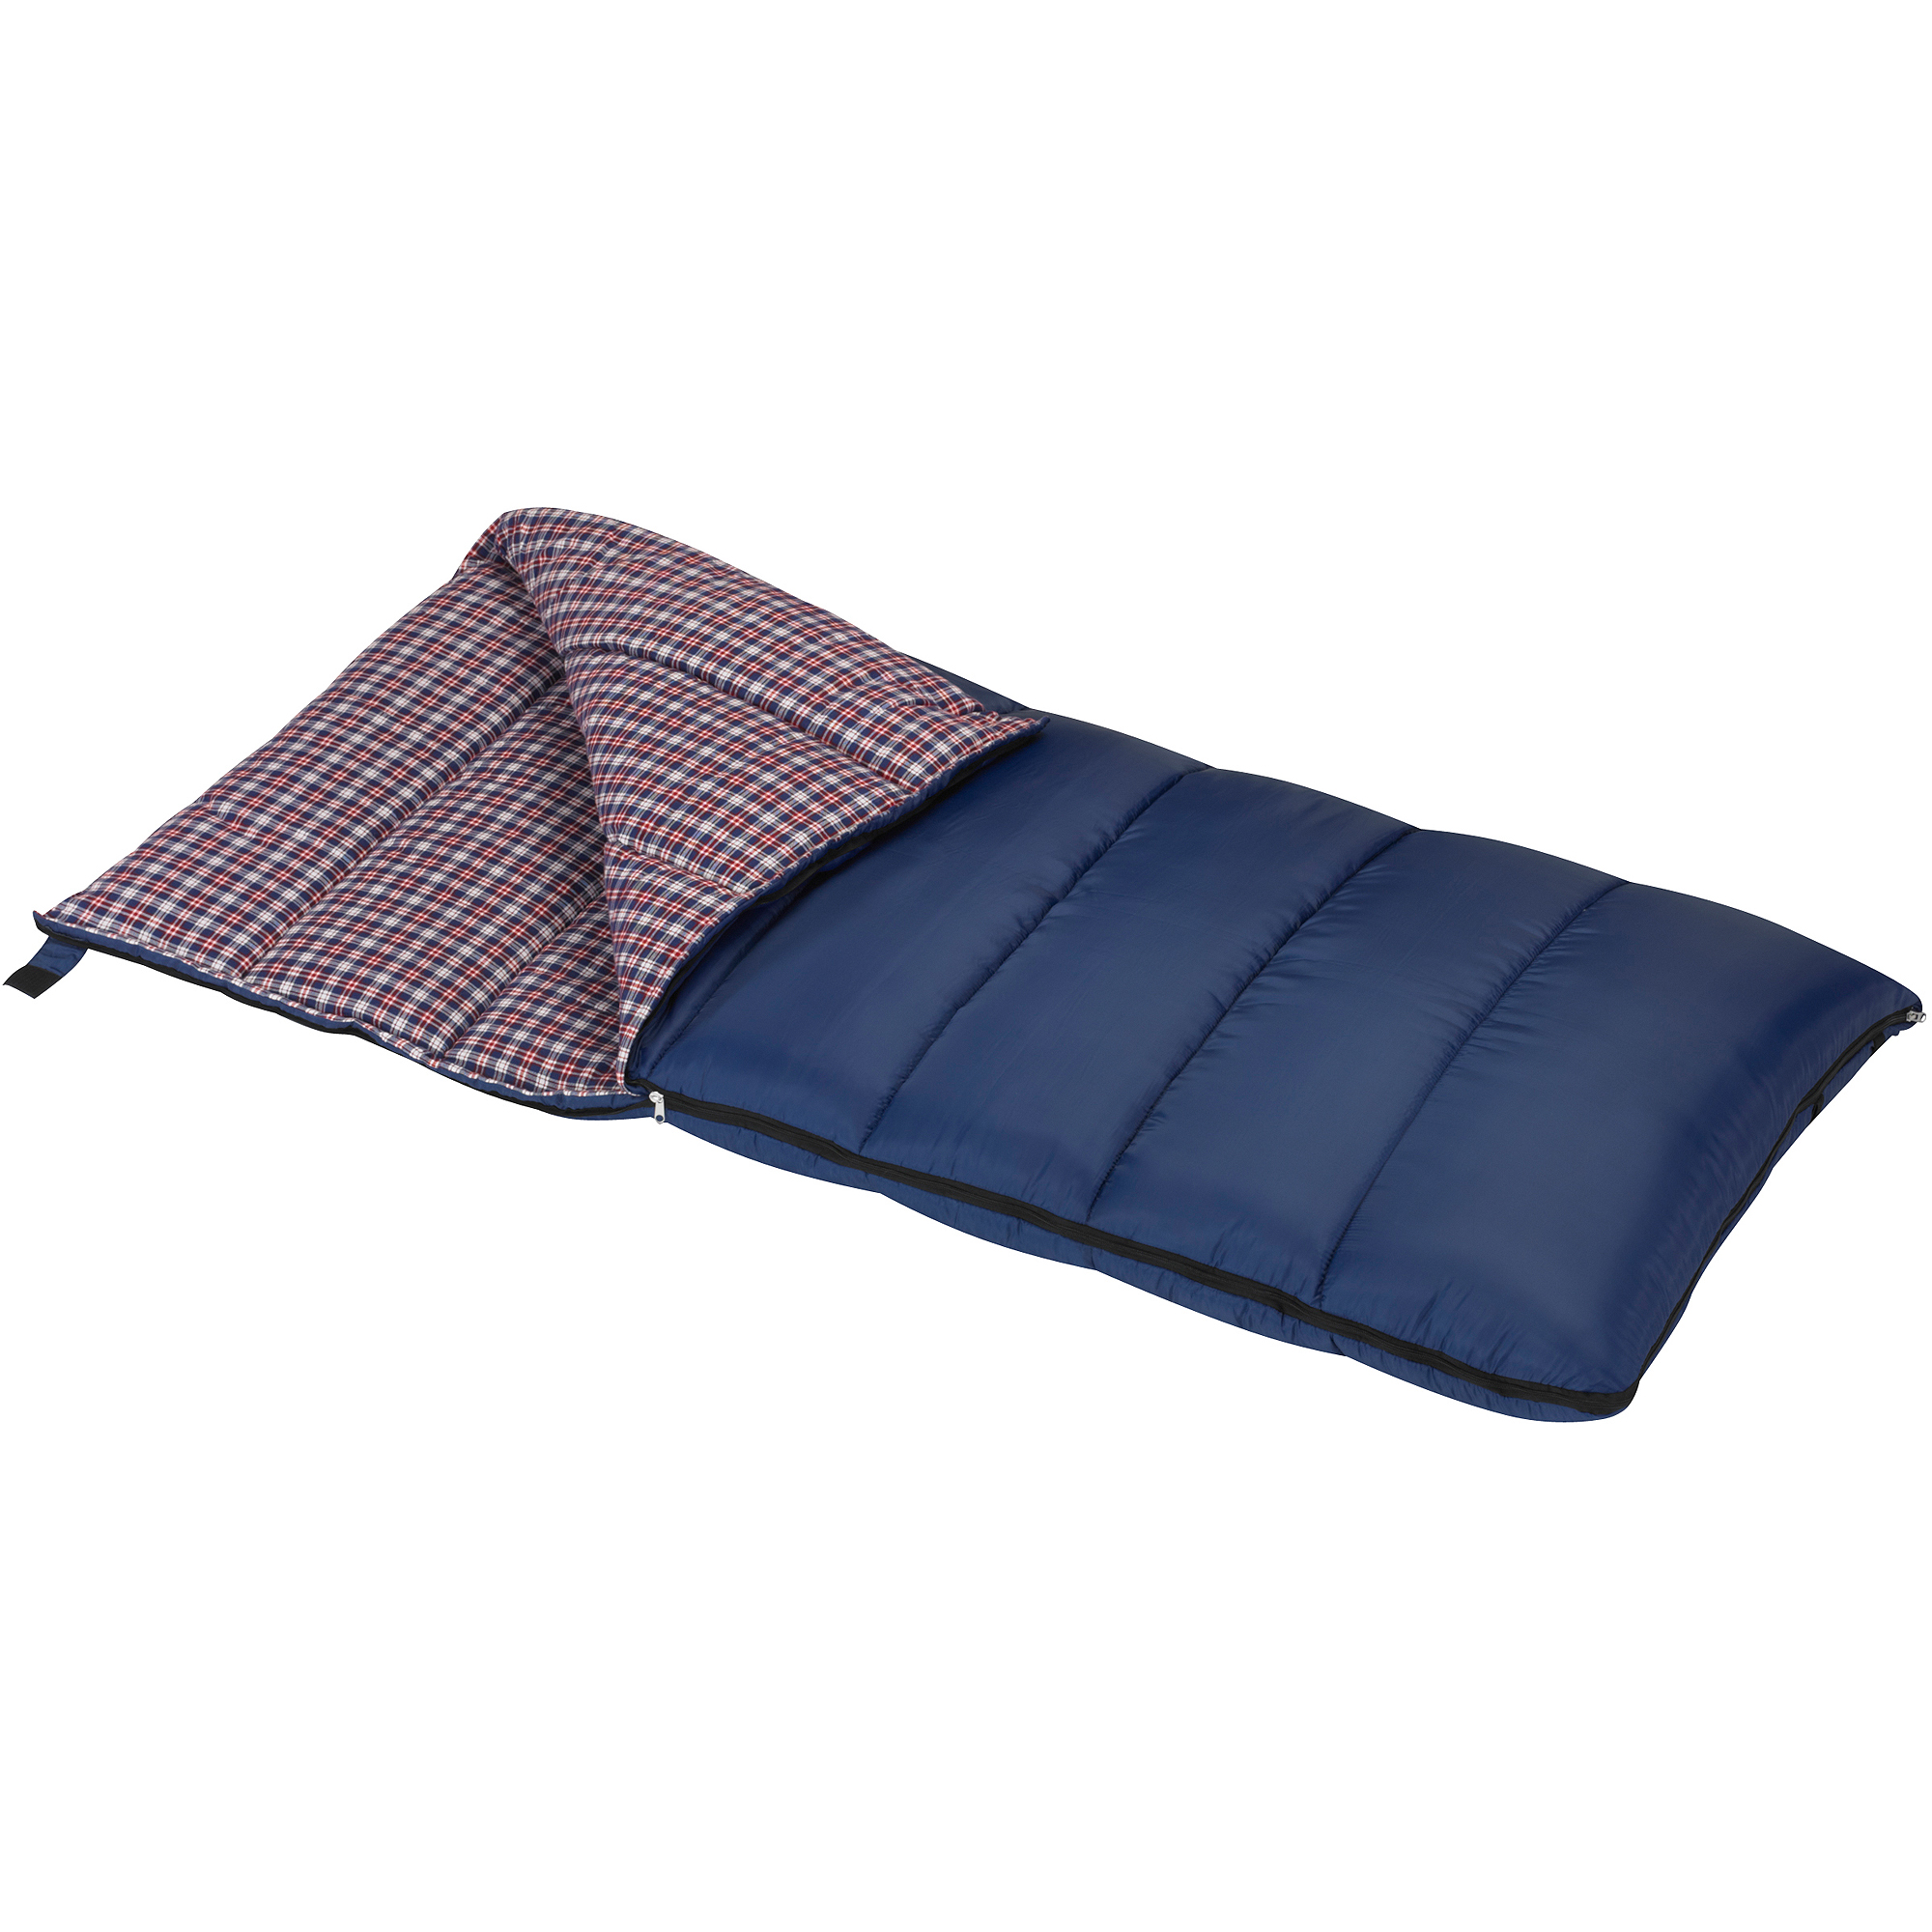 Wenzel Blue Jay 25-Degree Sleeping Bag, Blue by Wenzel